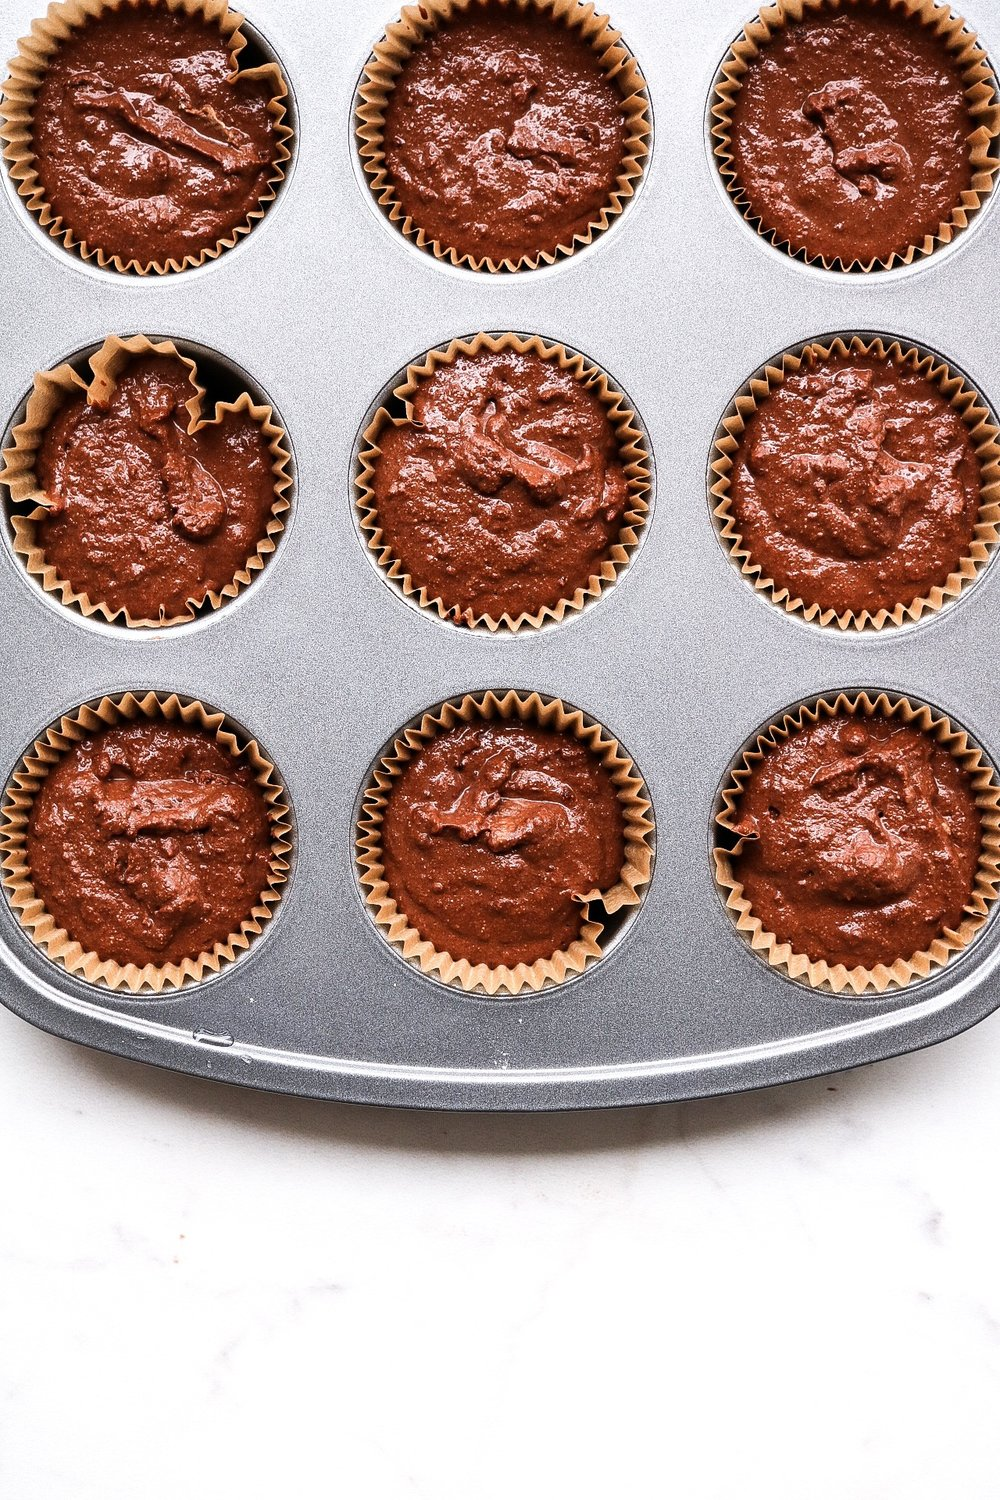 The cupcakes before popping them into the oven!